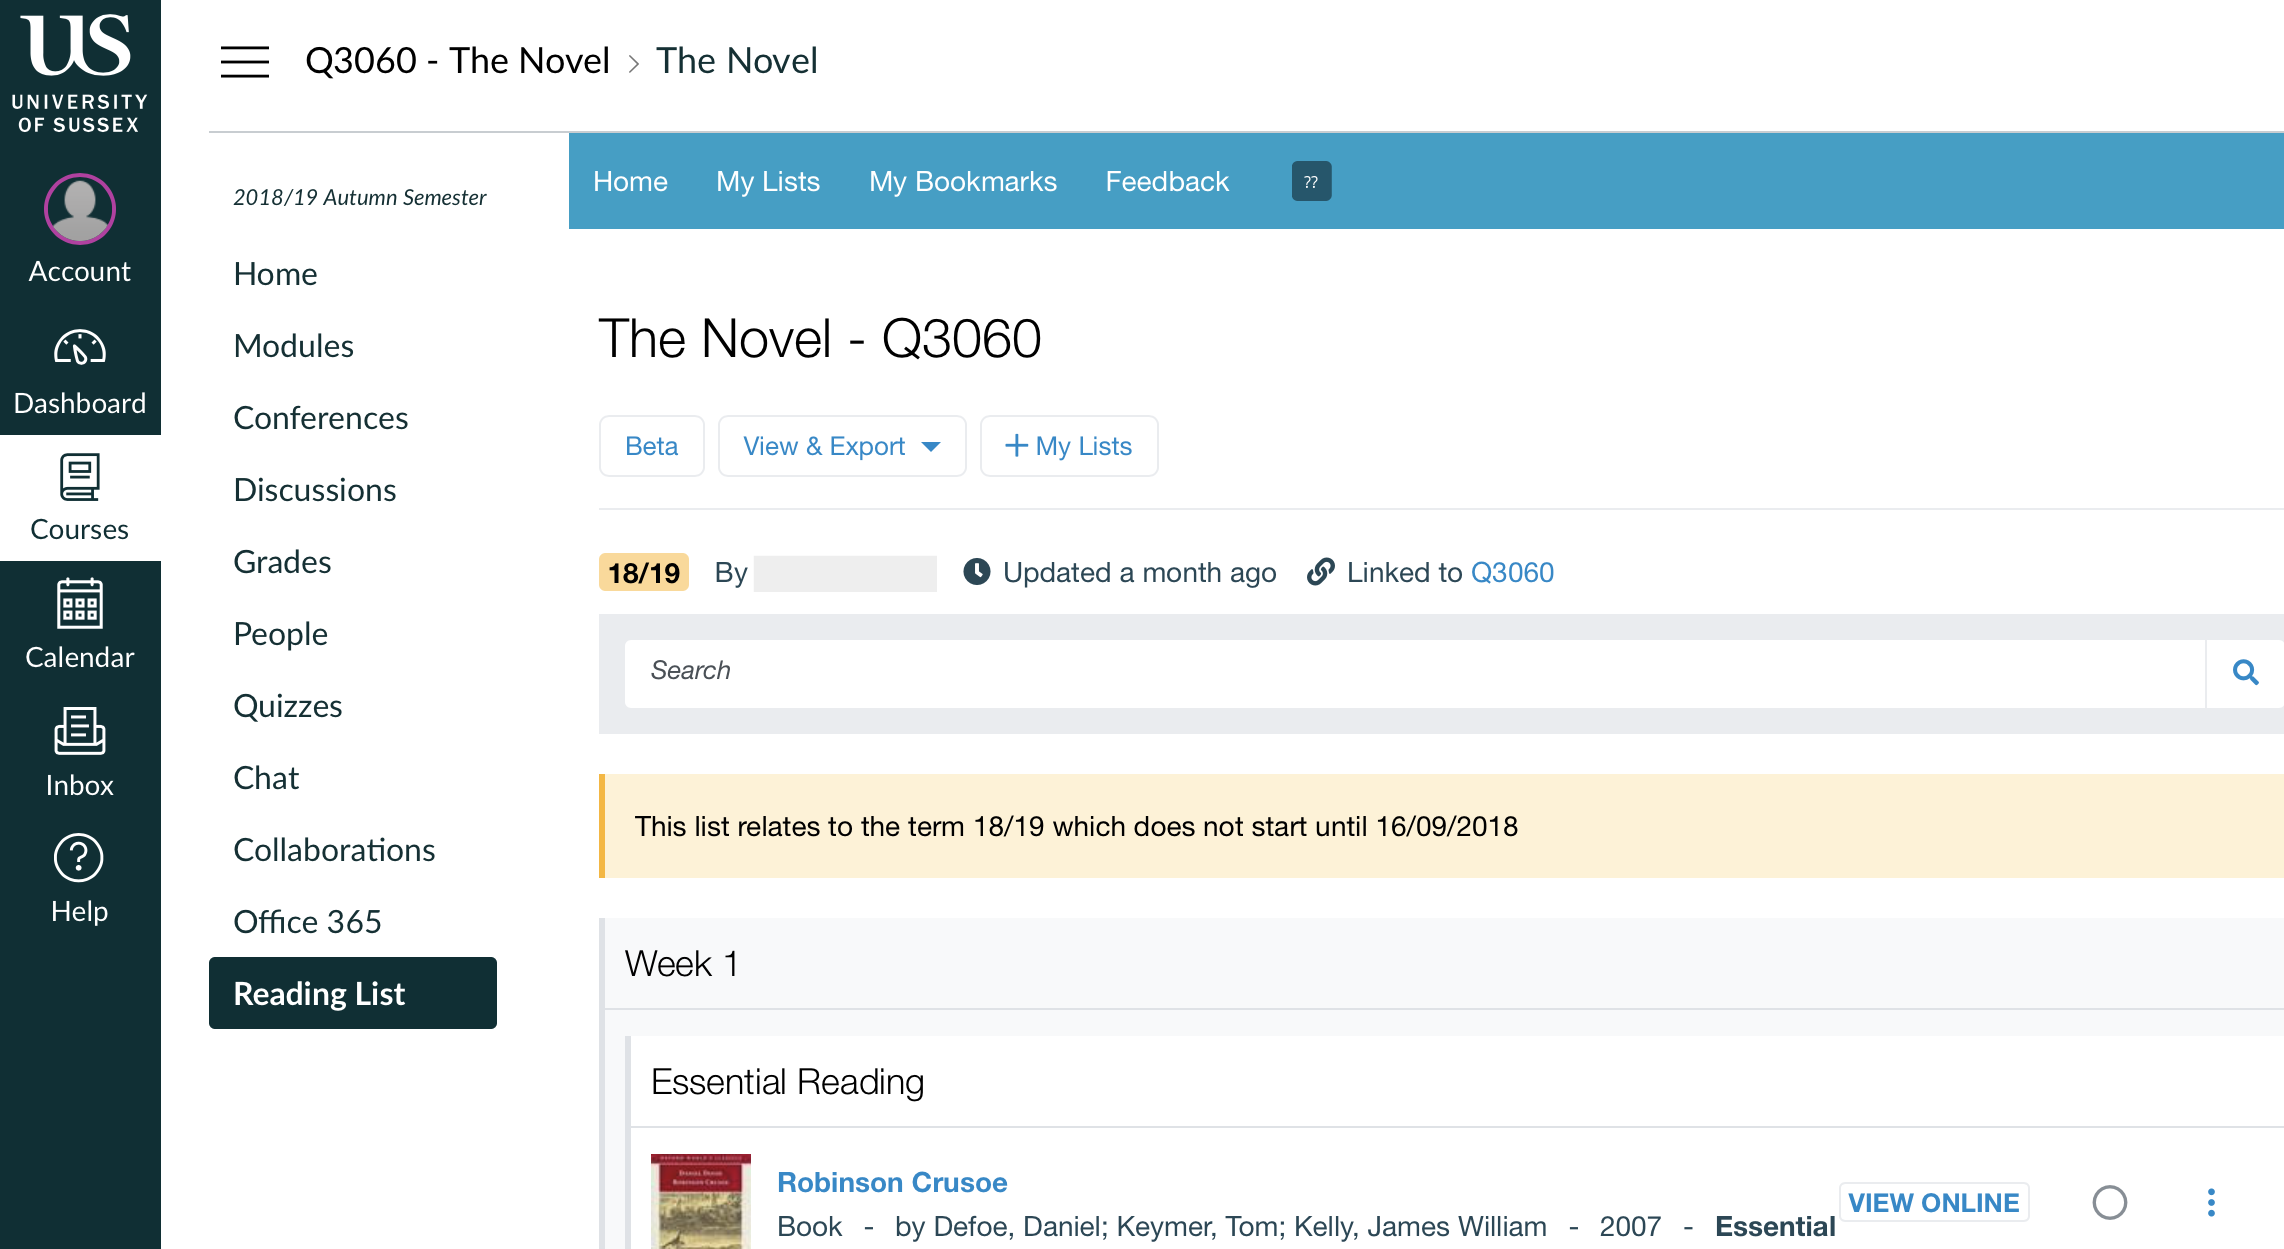 Screenshot showing a student's view of the reading list in Canvas